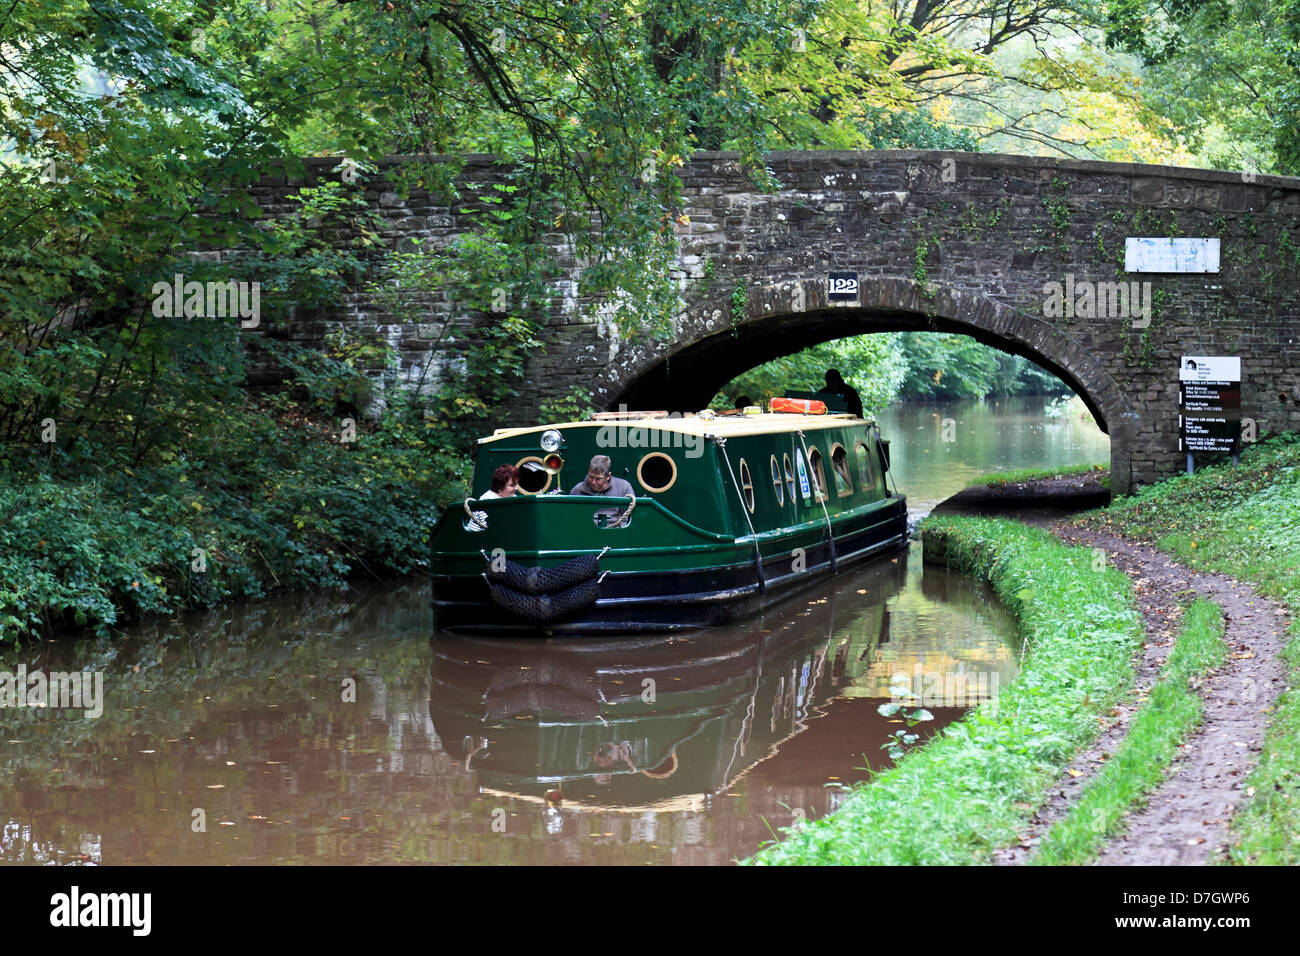 8885. Monmouthshire & Brecon Canal near Talybont-on-Usk, Powys, Wales, UK - Stock Image